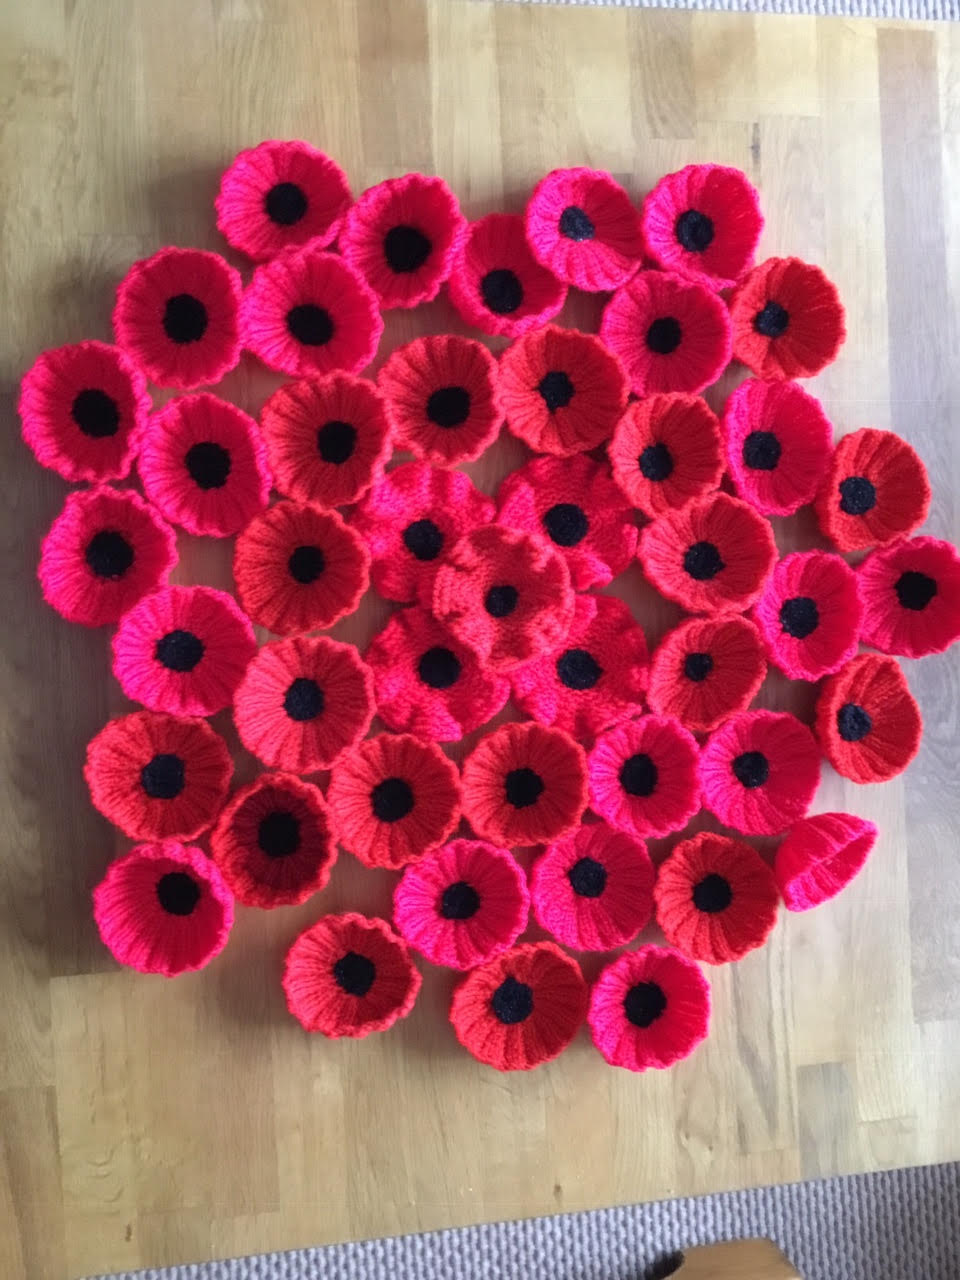 Knitted Poppies for Remembrance